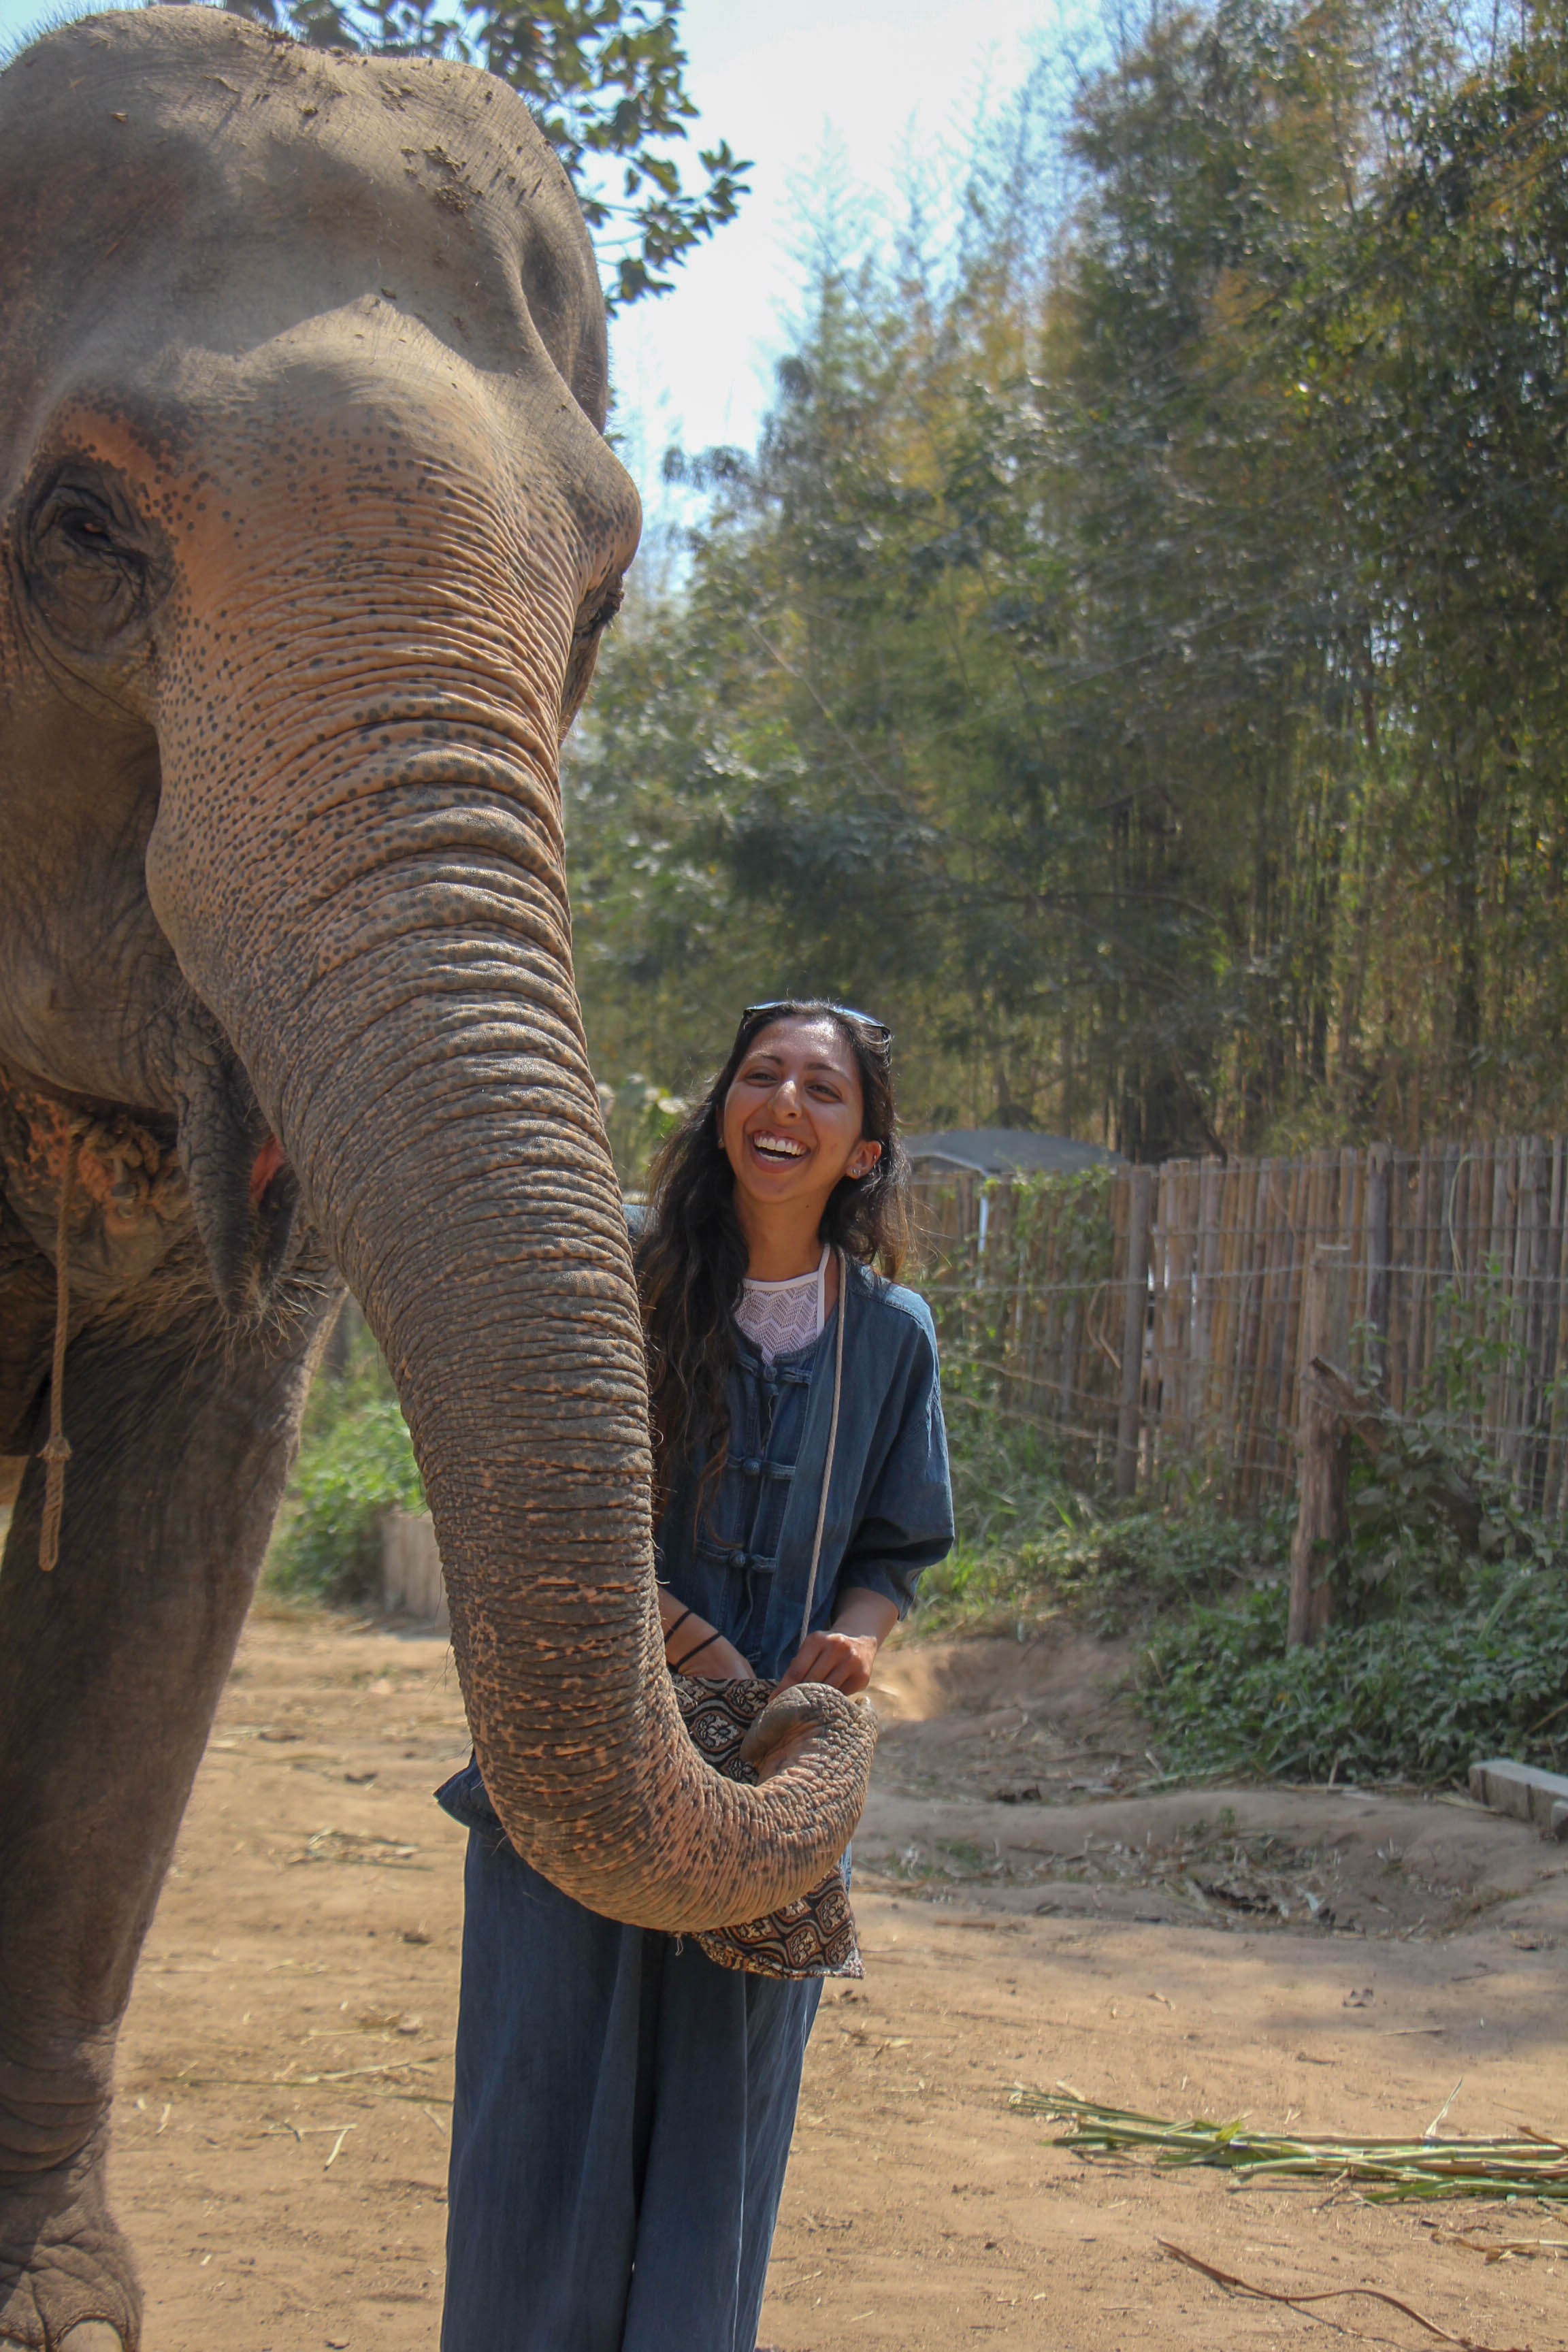 Thailand - Isha Darbari, a senior physiology and neurobiology major, travels through southeast Asia. This elephant was one of her favorite friends she made on the trip!